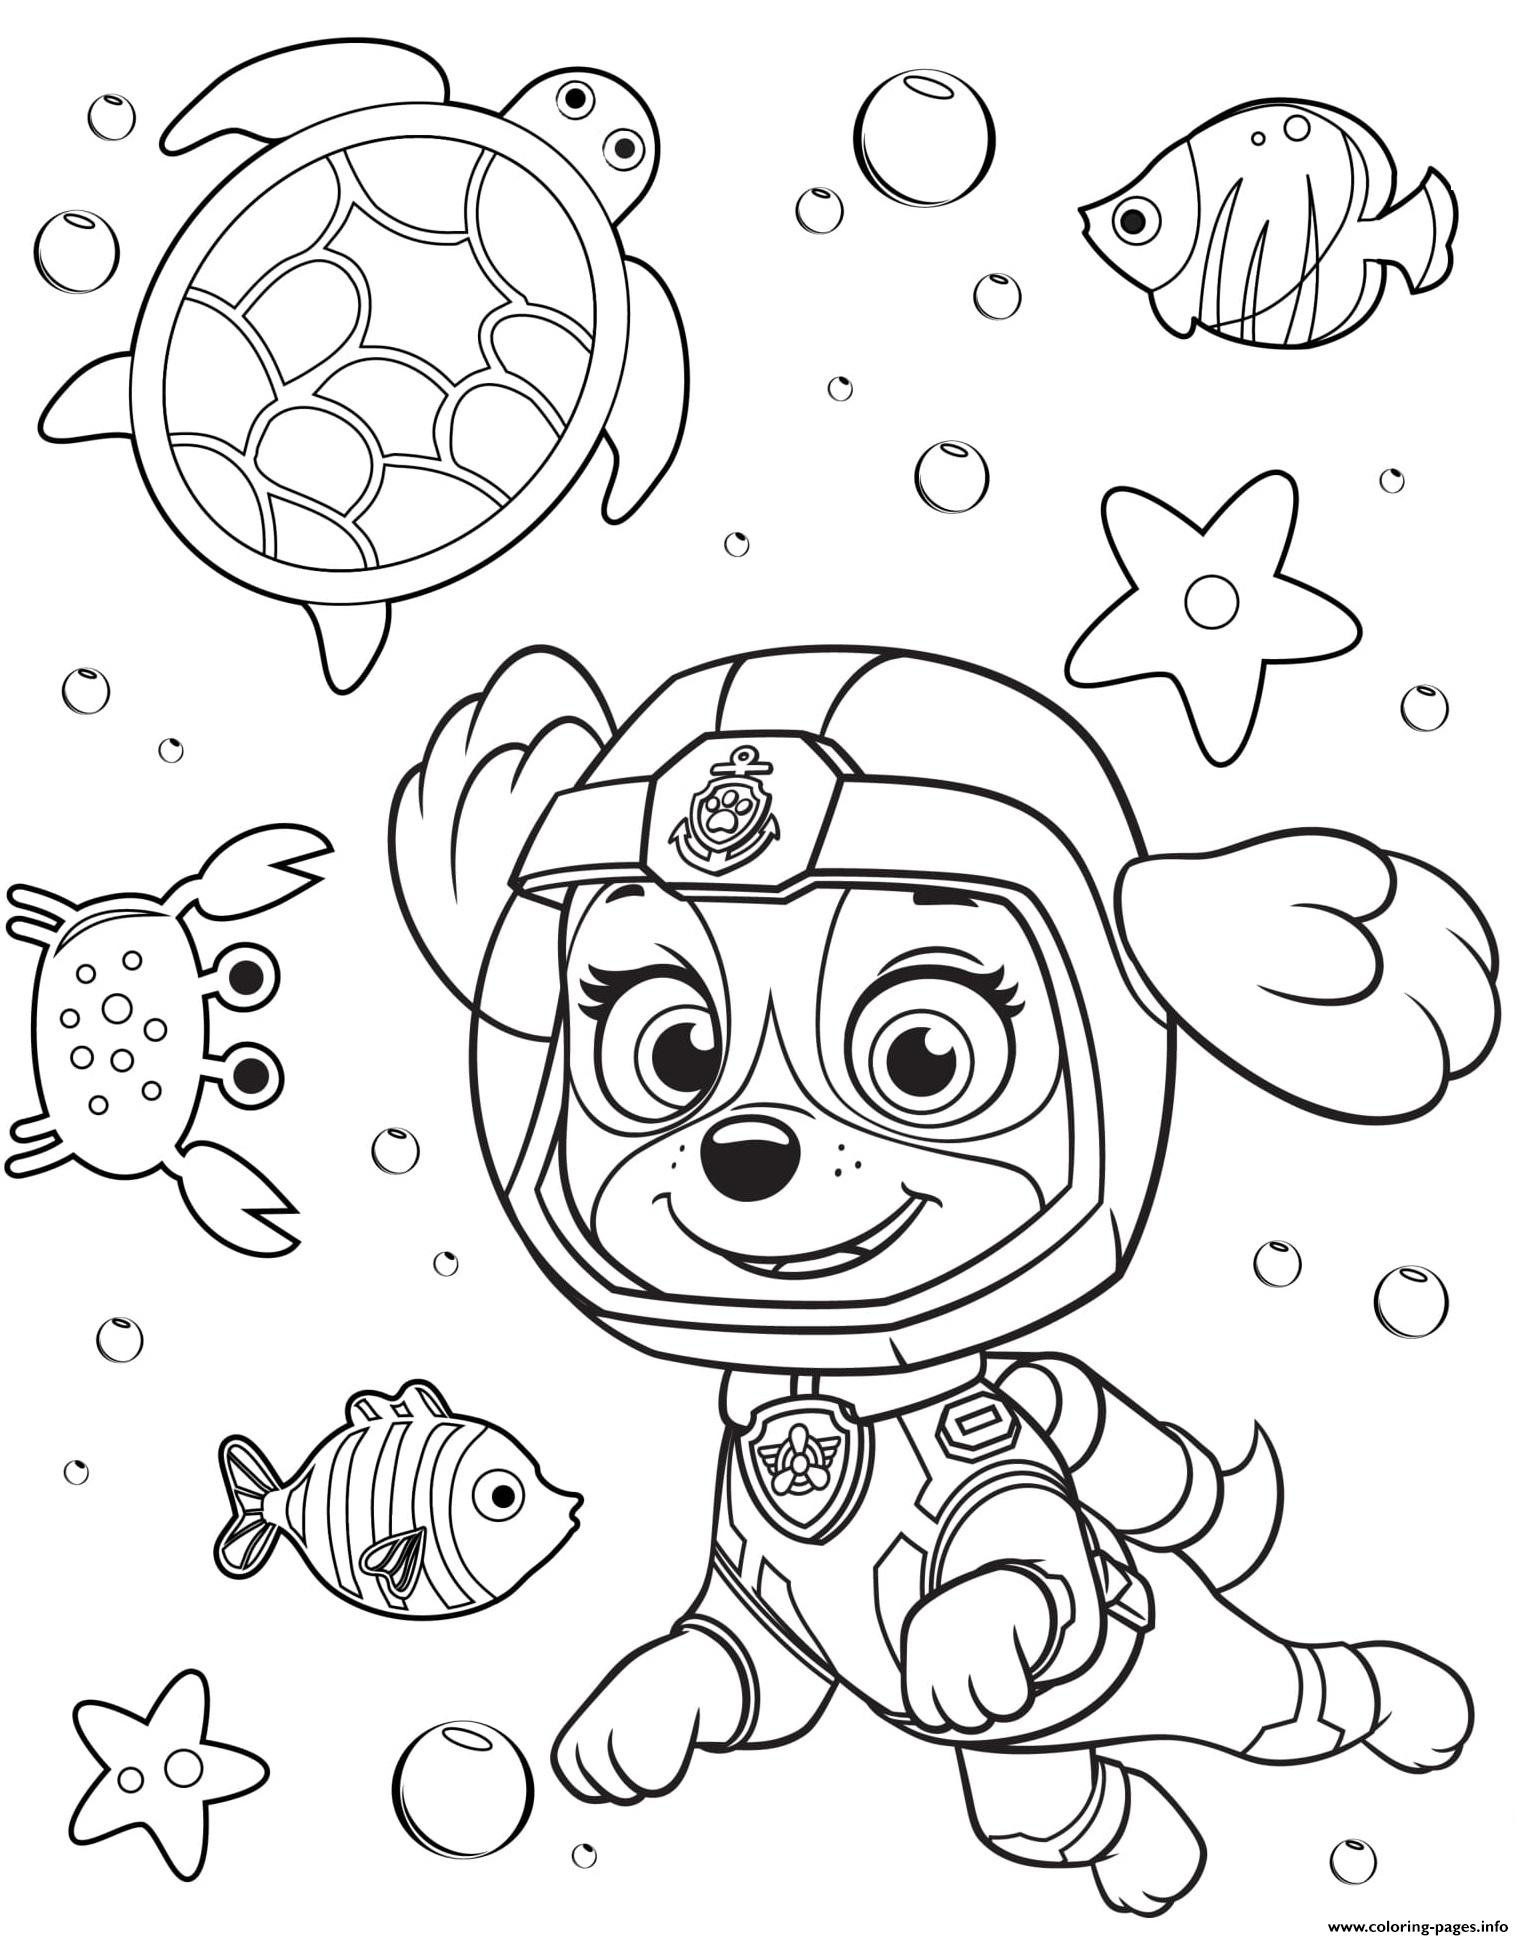 Best ideas about Printable Coloring Pages For Boys Paw Patrol . Save or Pin Sea Patrol Skye Paw Coloring Pages Printable Now.